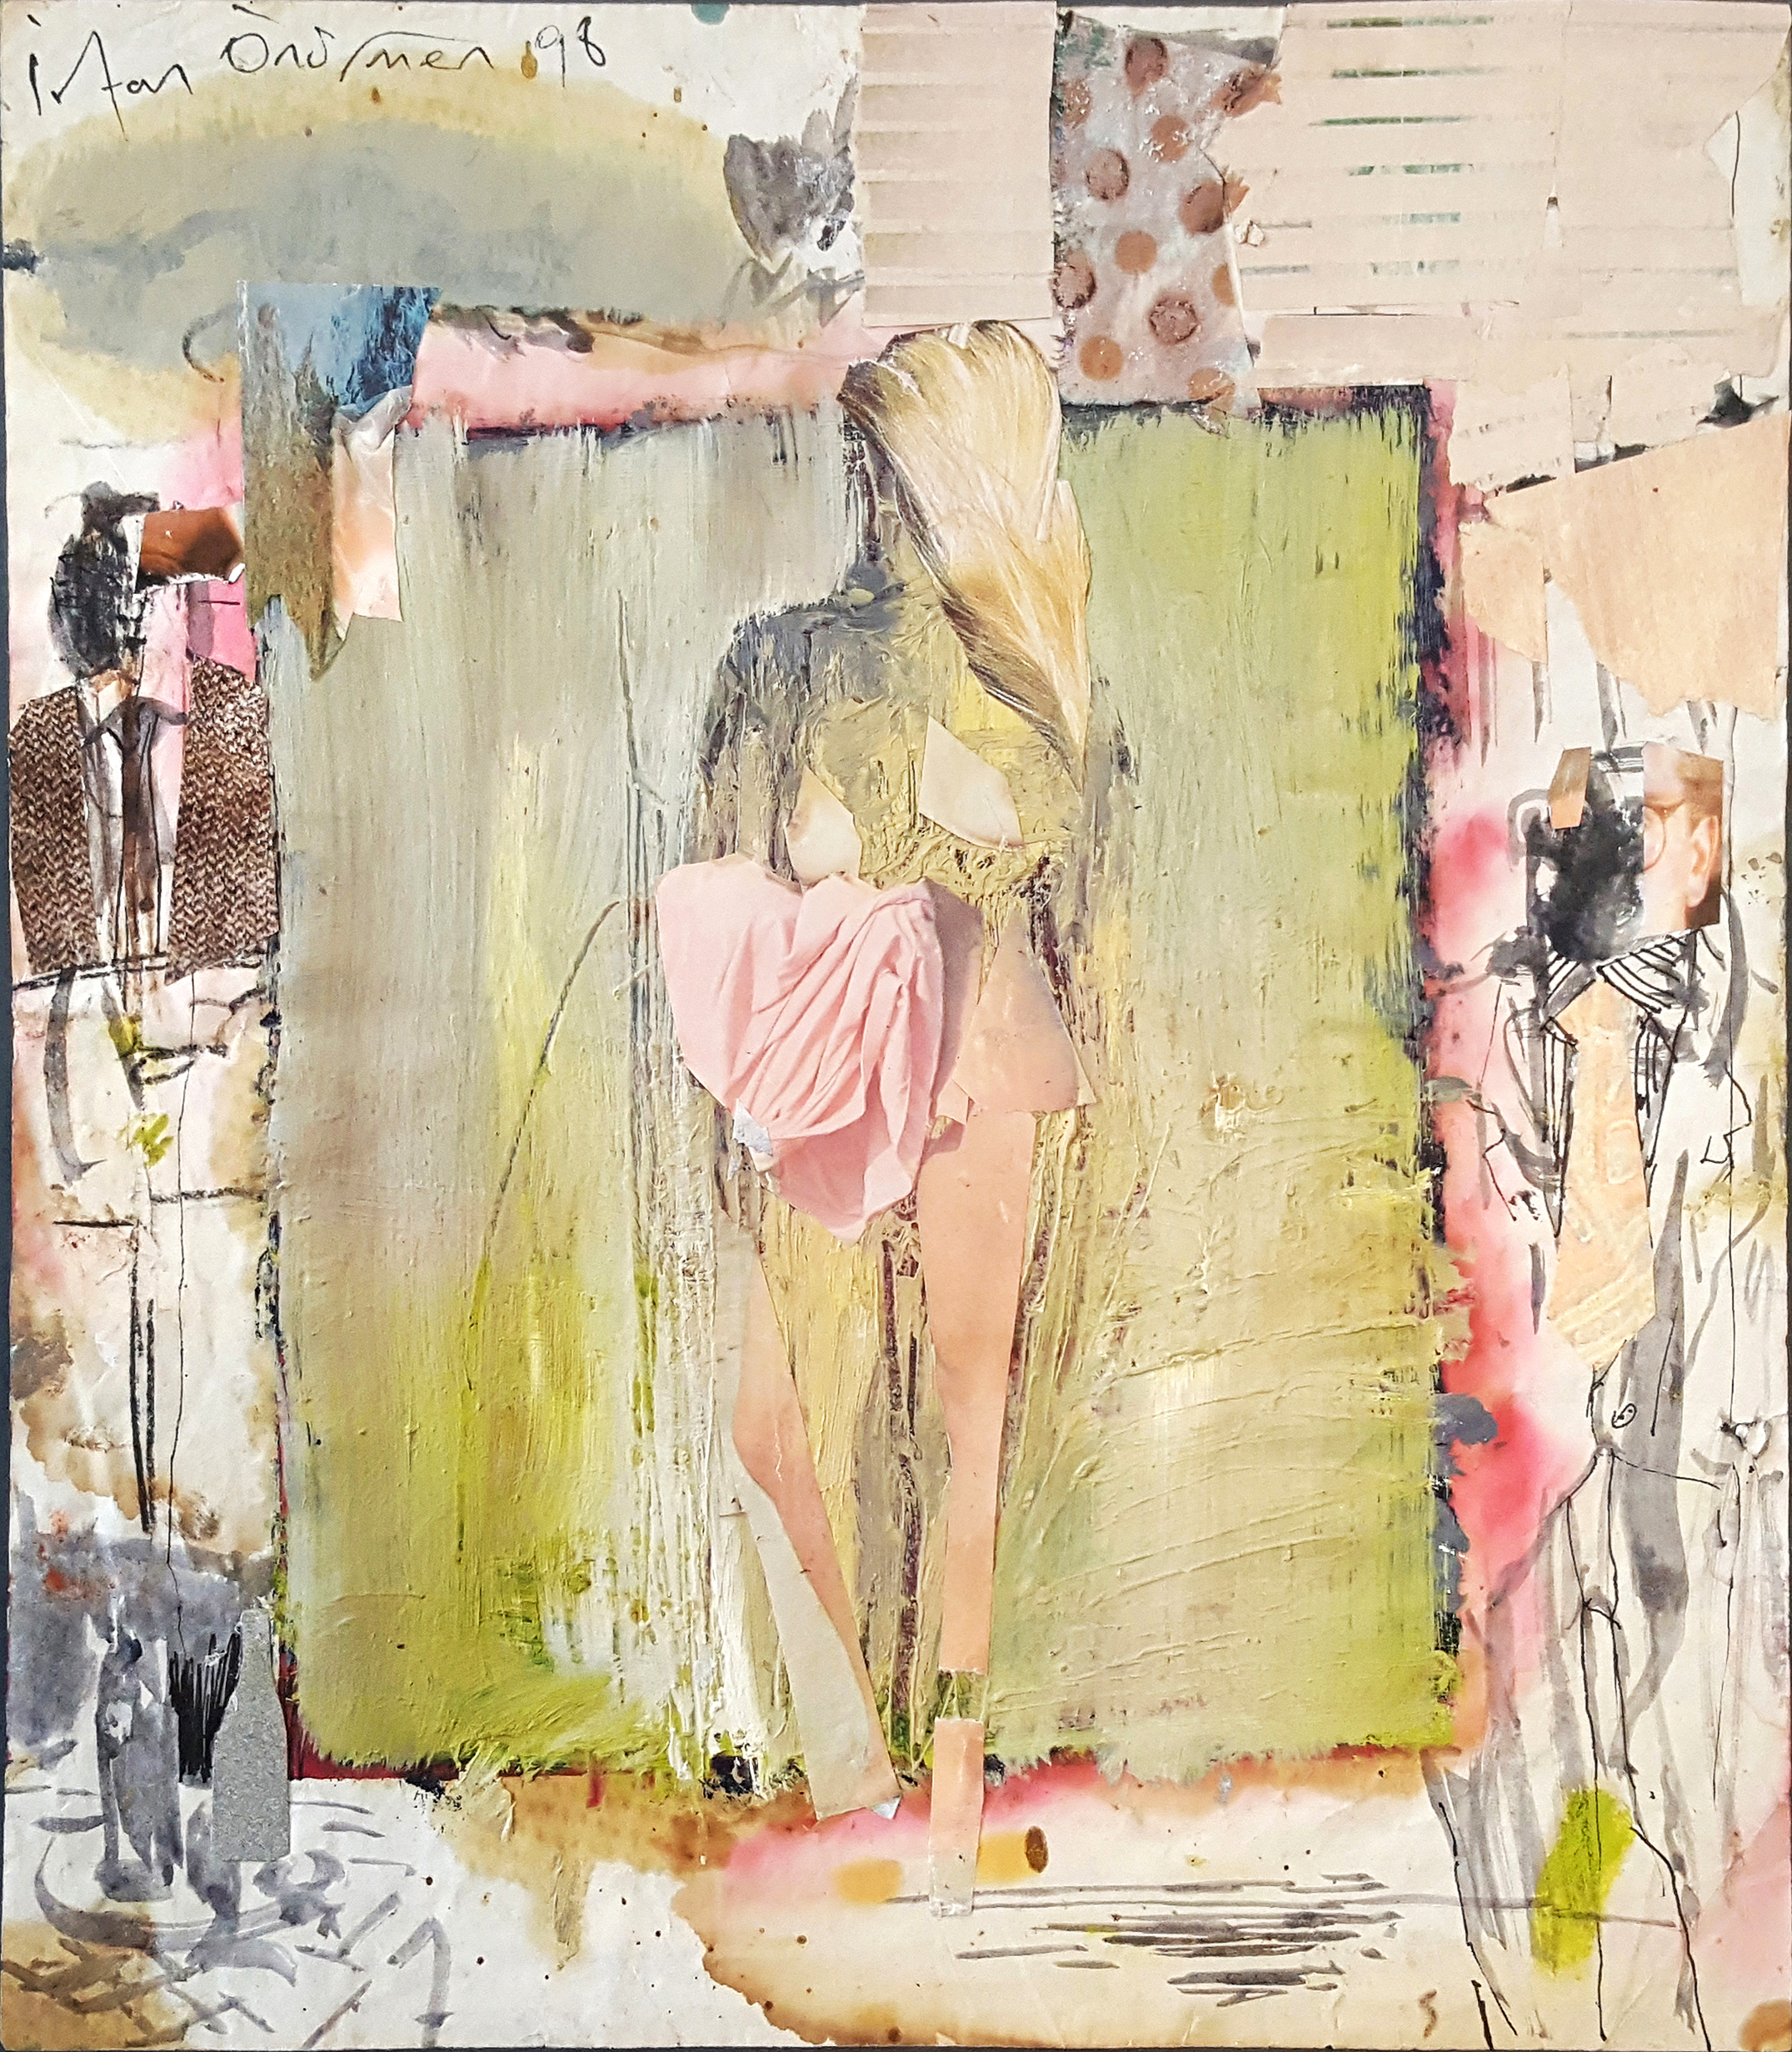 Aphrodite-1999-mixed media on paper-28x32cm.jpg